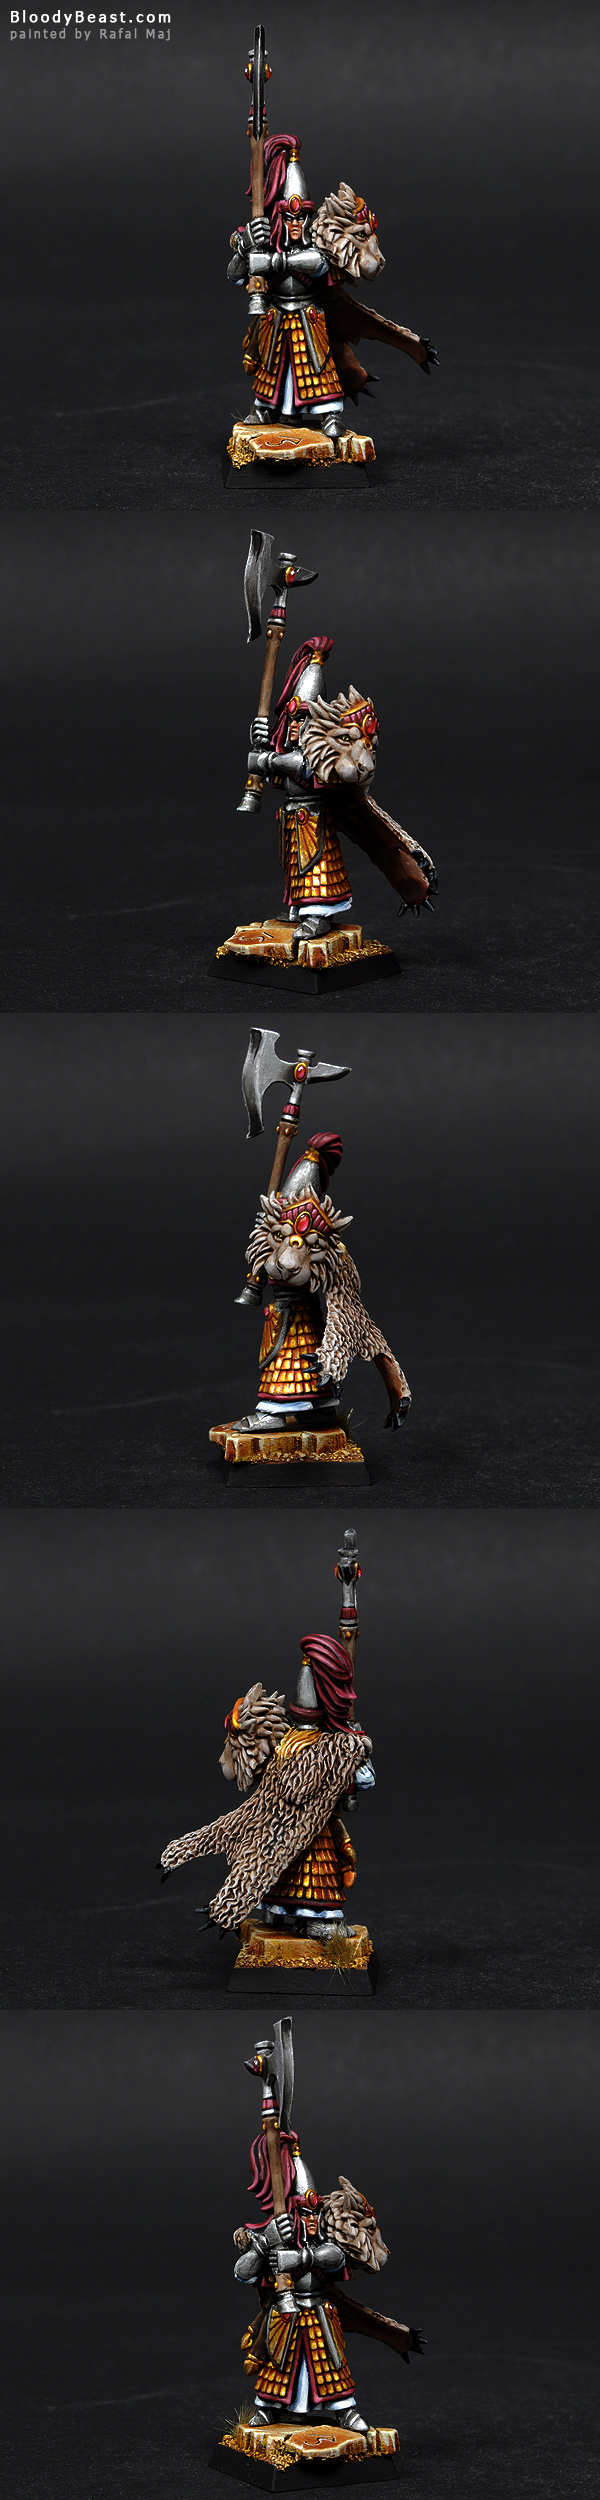 High Elves Lion Prince with Great Axe painted by Rafal Maj (BloodyBeast.com)